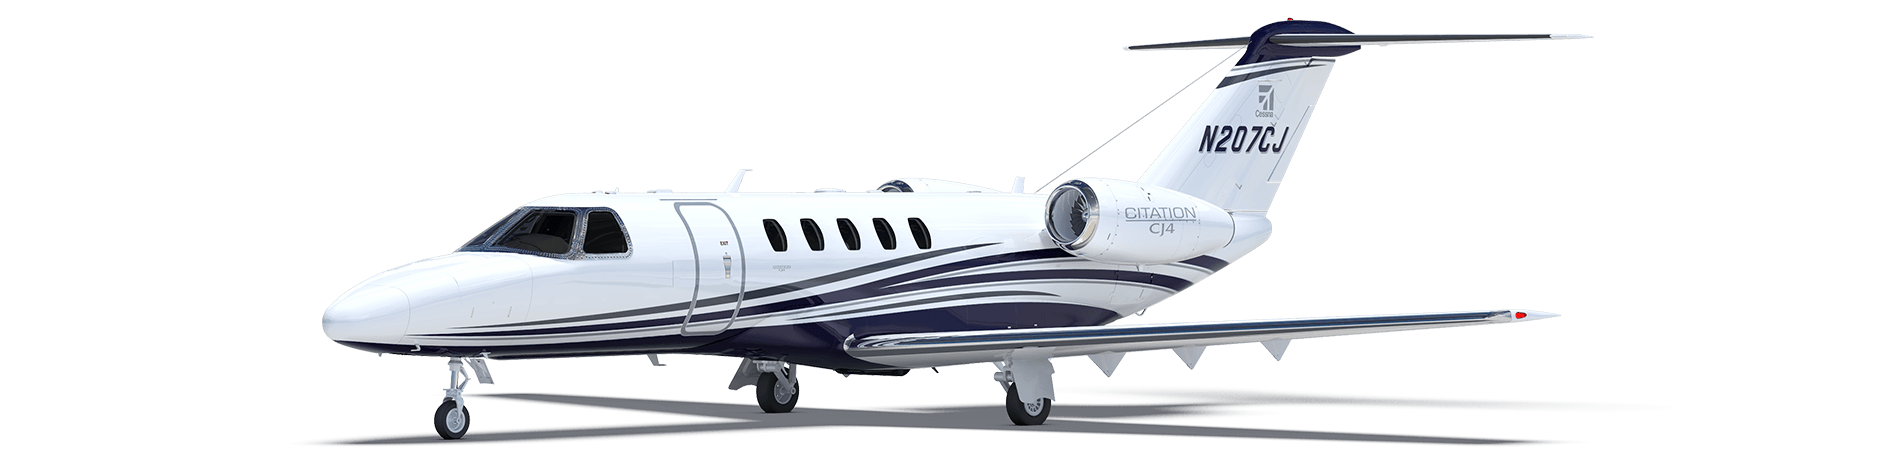 Citation Cj4 Radar Tracking Aircraft Vector Clip Wiring Circuit Diagram Move Your Mouse Over The Image To Pause